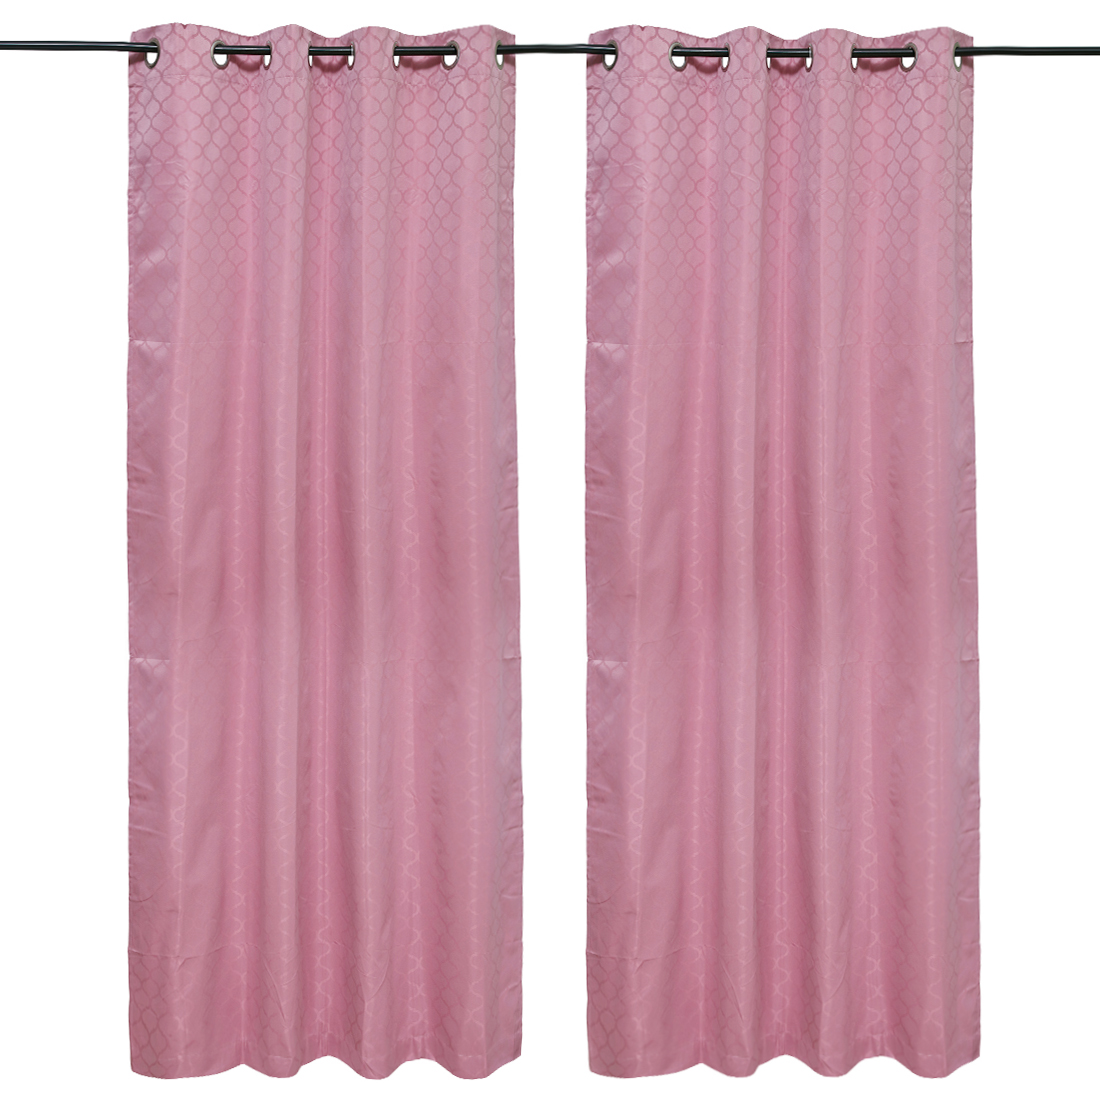 Emilia Jacquard set of 2 Polyester Door Curtains in Rose Colour by Living Essence